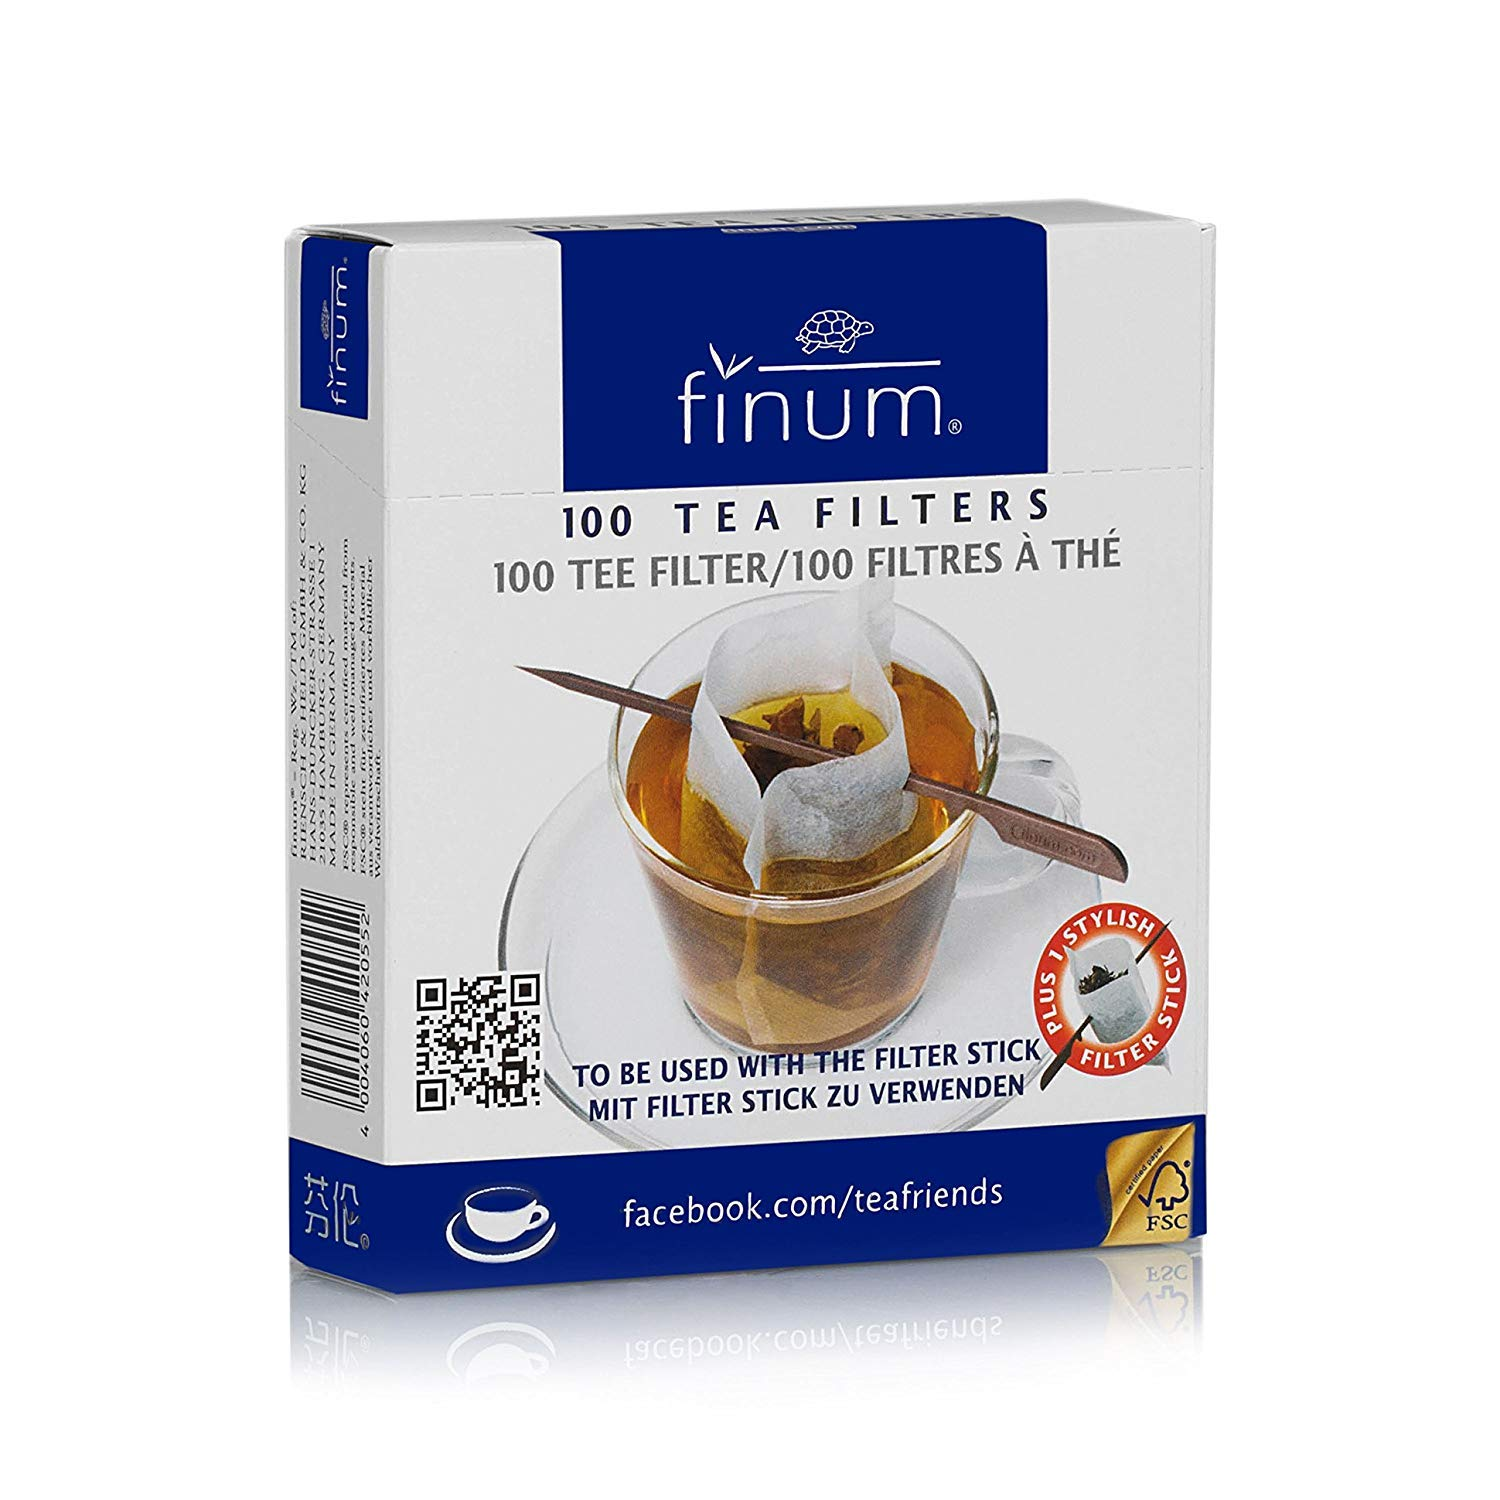 Finum Disposable Cup-Sized Paper Tea Filter Bags for Loose Tea plus Stylish Filter Holding Stick, 100 Count, White (Pack of 30)